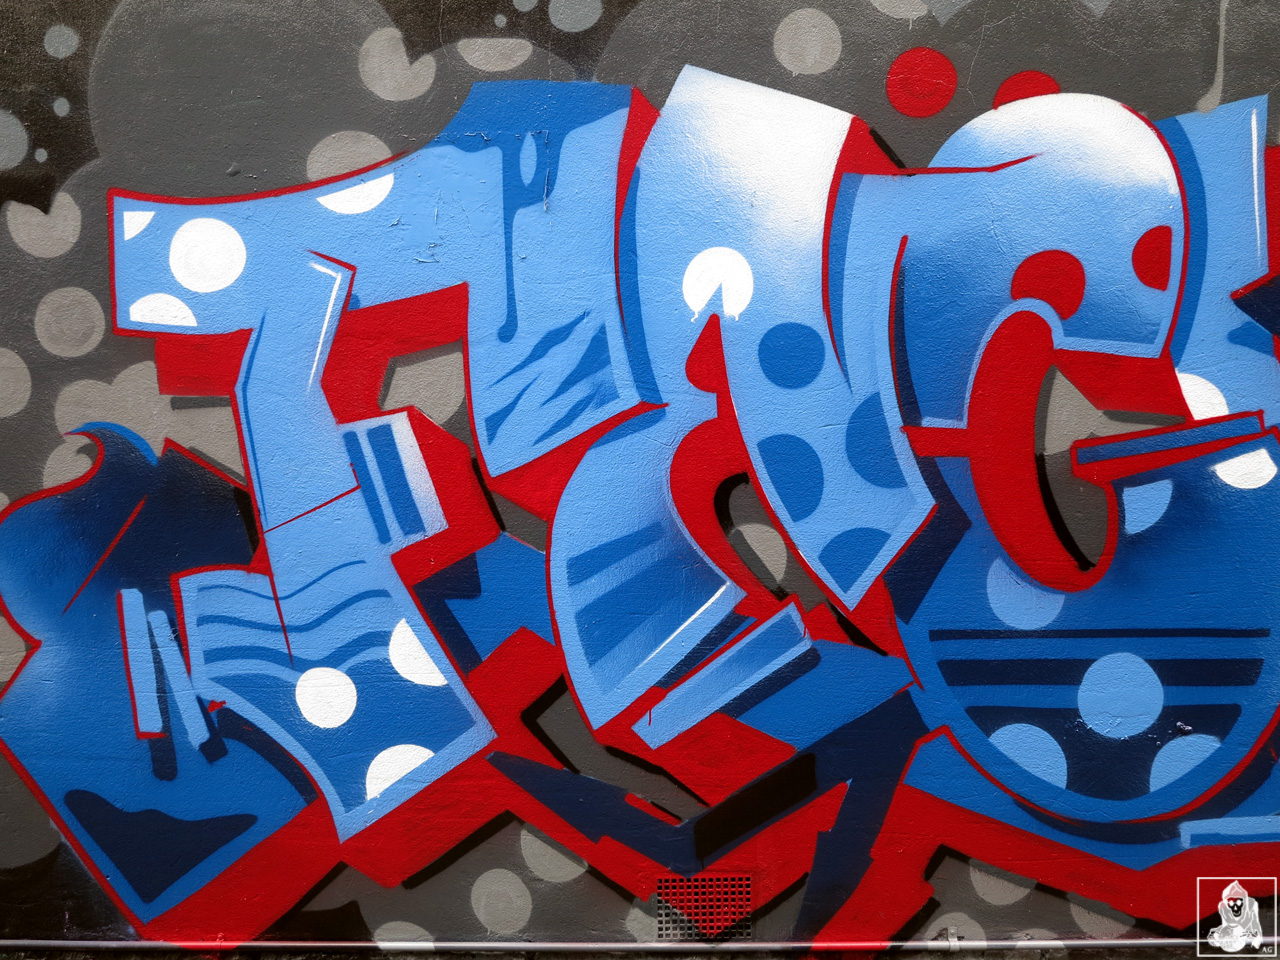 Bolts-Fecks-Collingwood-Graffiti-Melbourne-Arty-Graffarti5